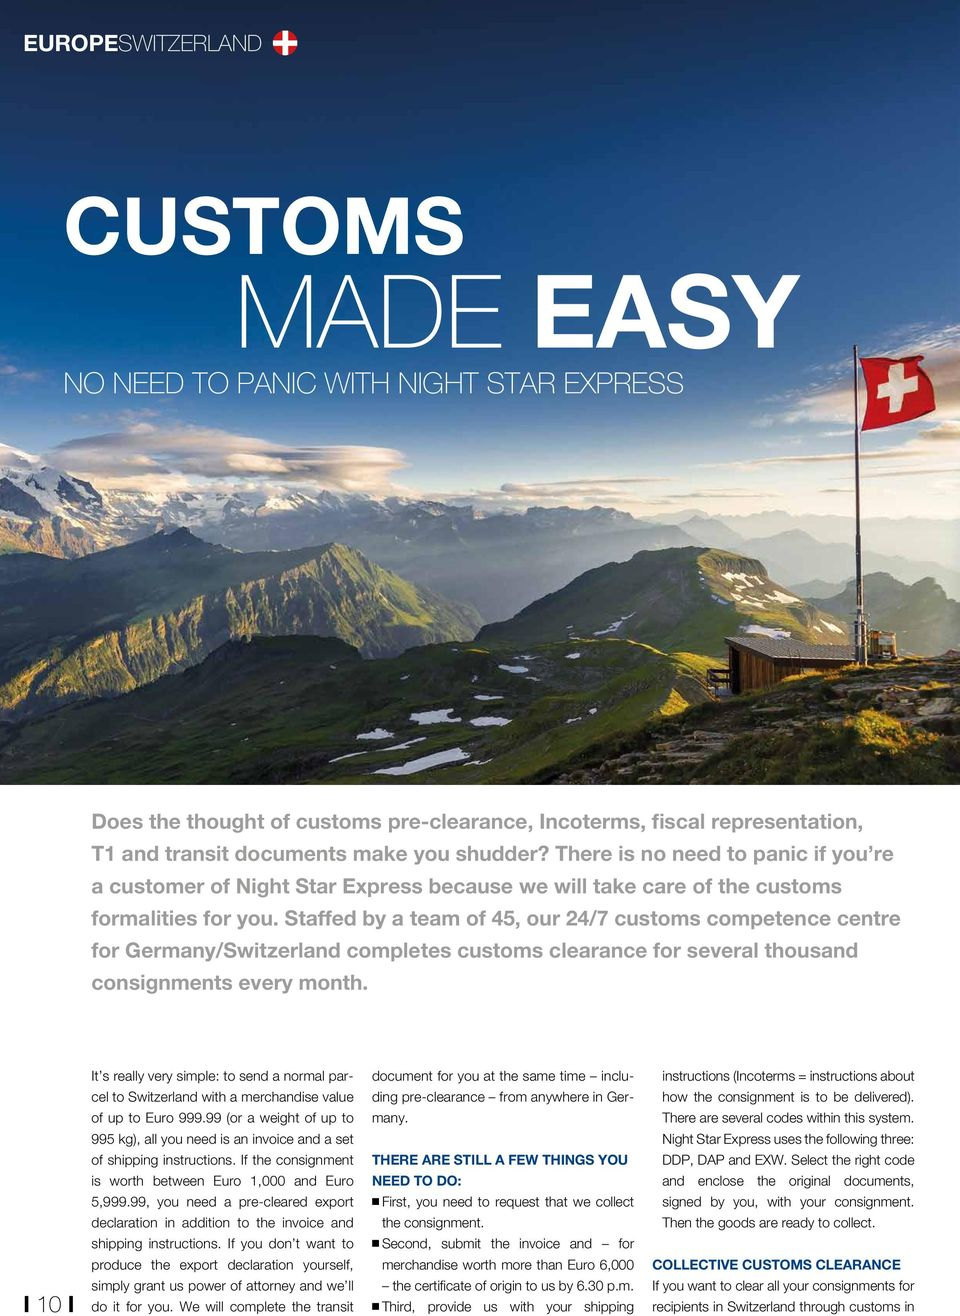 Staffed by a team of 45, our 24/7 customs competence centre for Germany/Switzerland completes customs clearance for several thousand consignments every month.